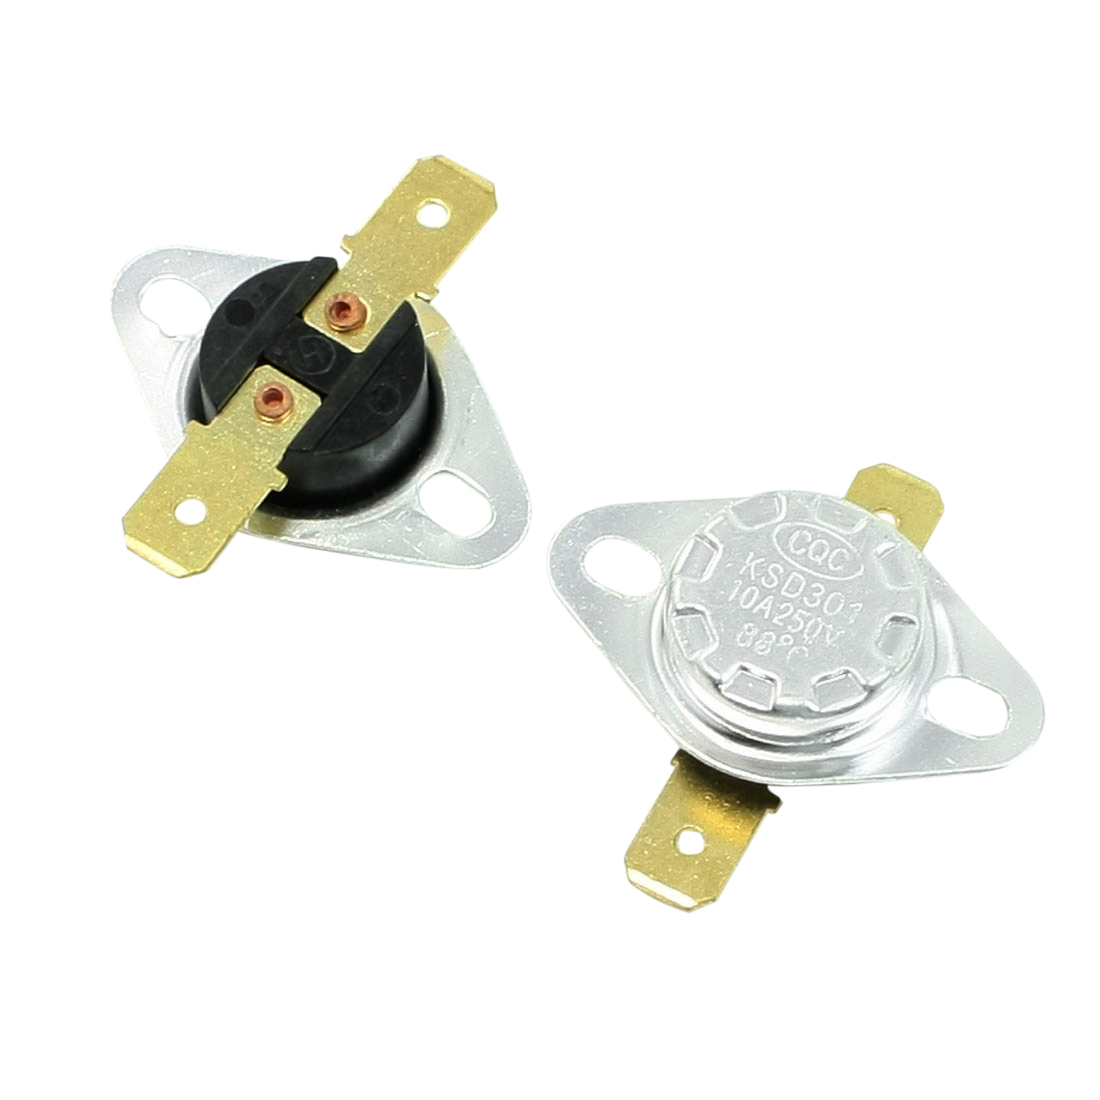 2 Pcs 250V 10A 88 Celsius 190F Temperature Controlled Switch KSD301